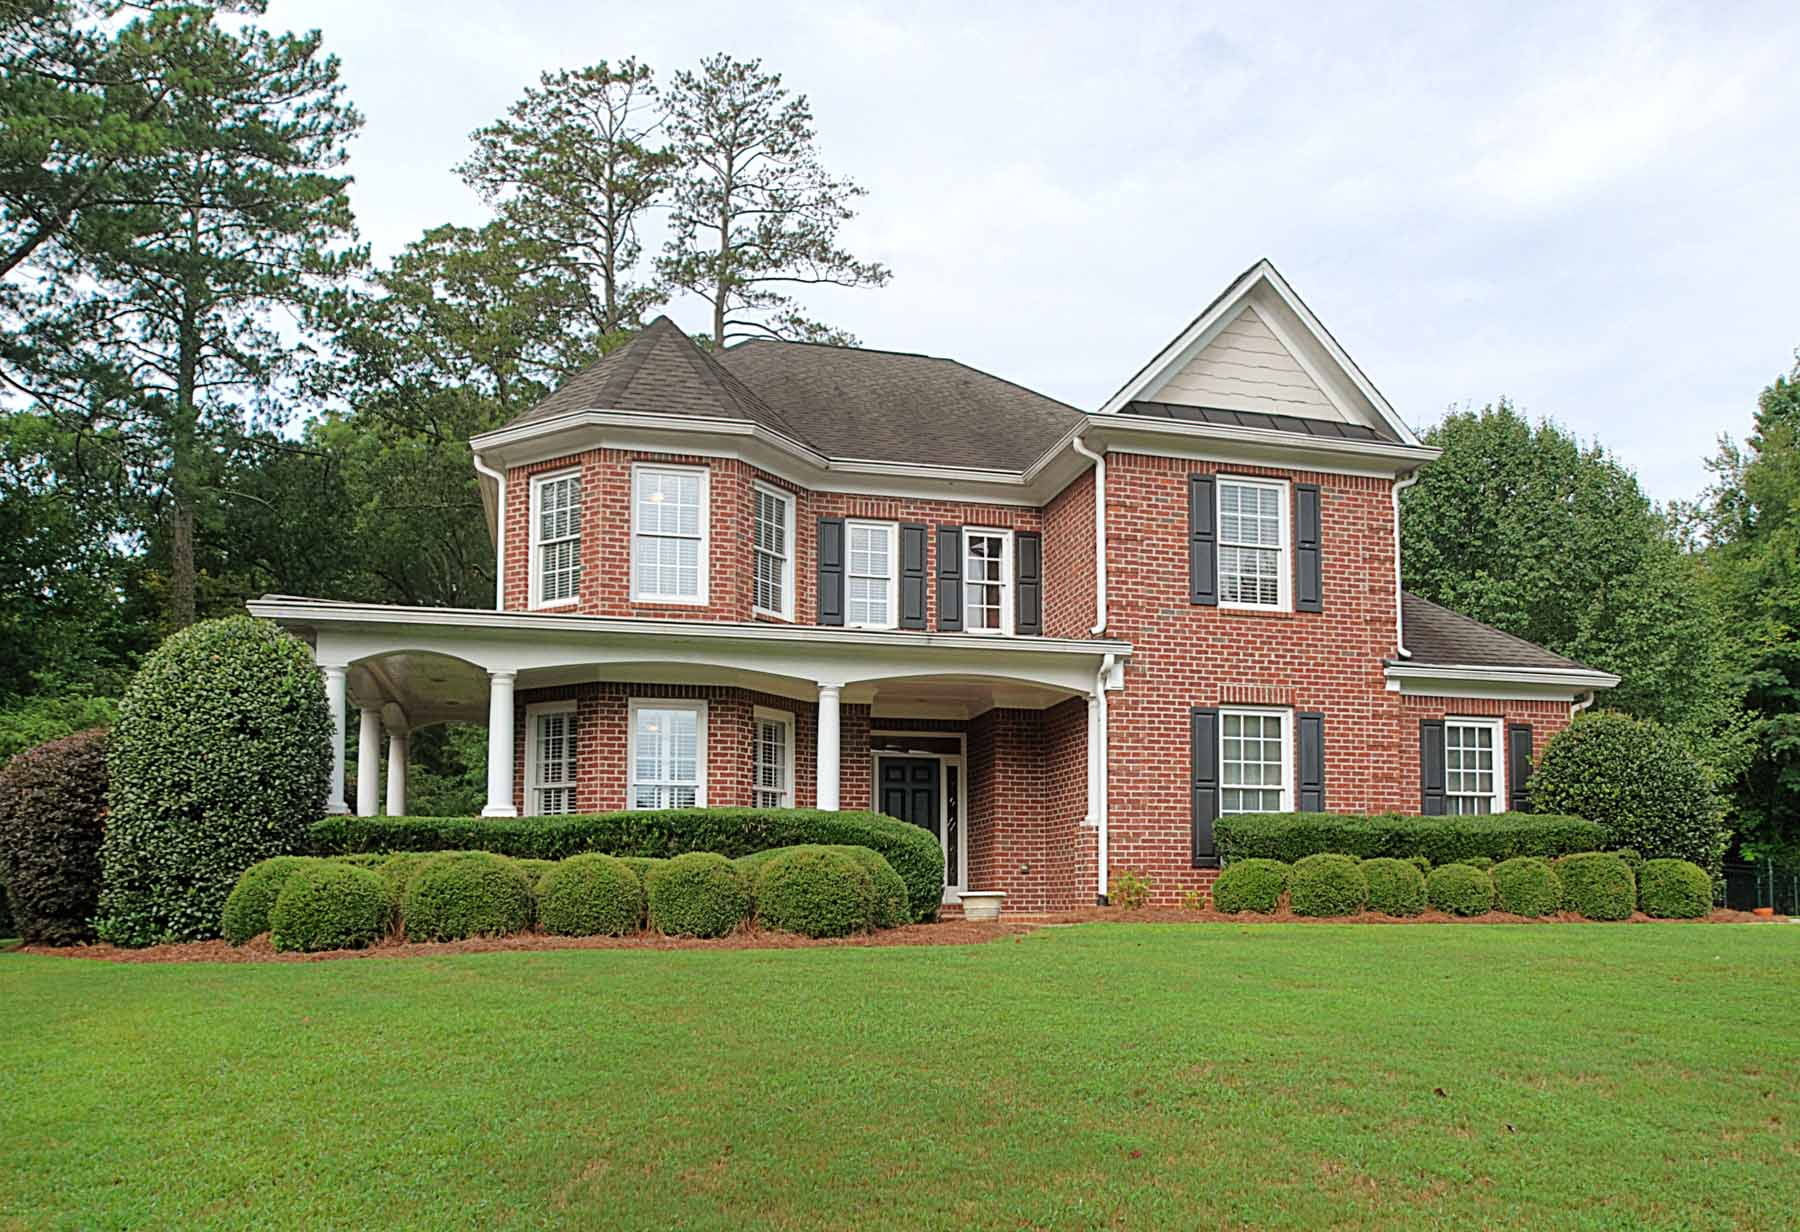 Single Family Home for Sale at Peaceful Park Living in Roswell 150 Lynwood Drive Roswell, Georgia 30075 United States